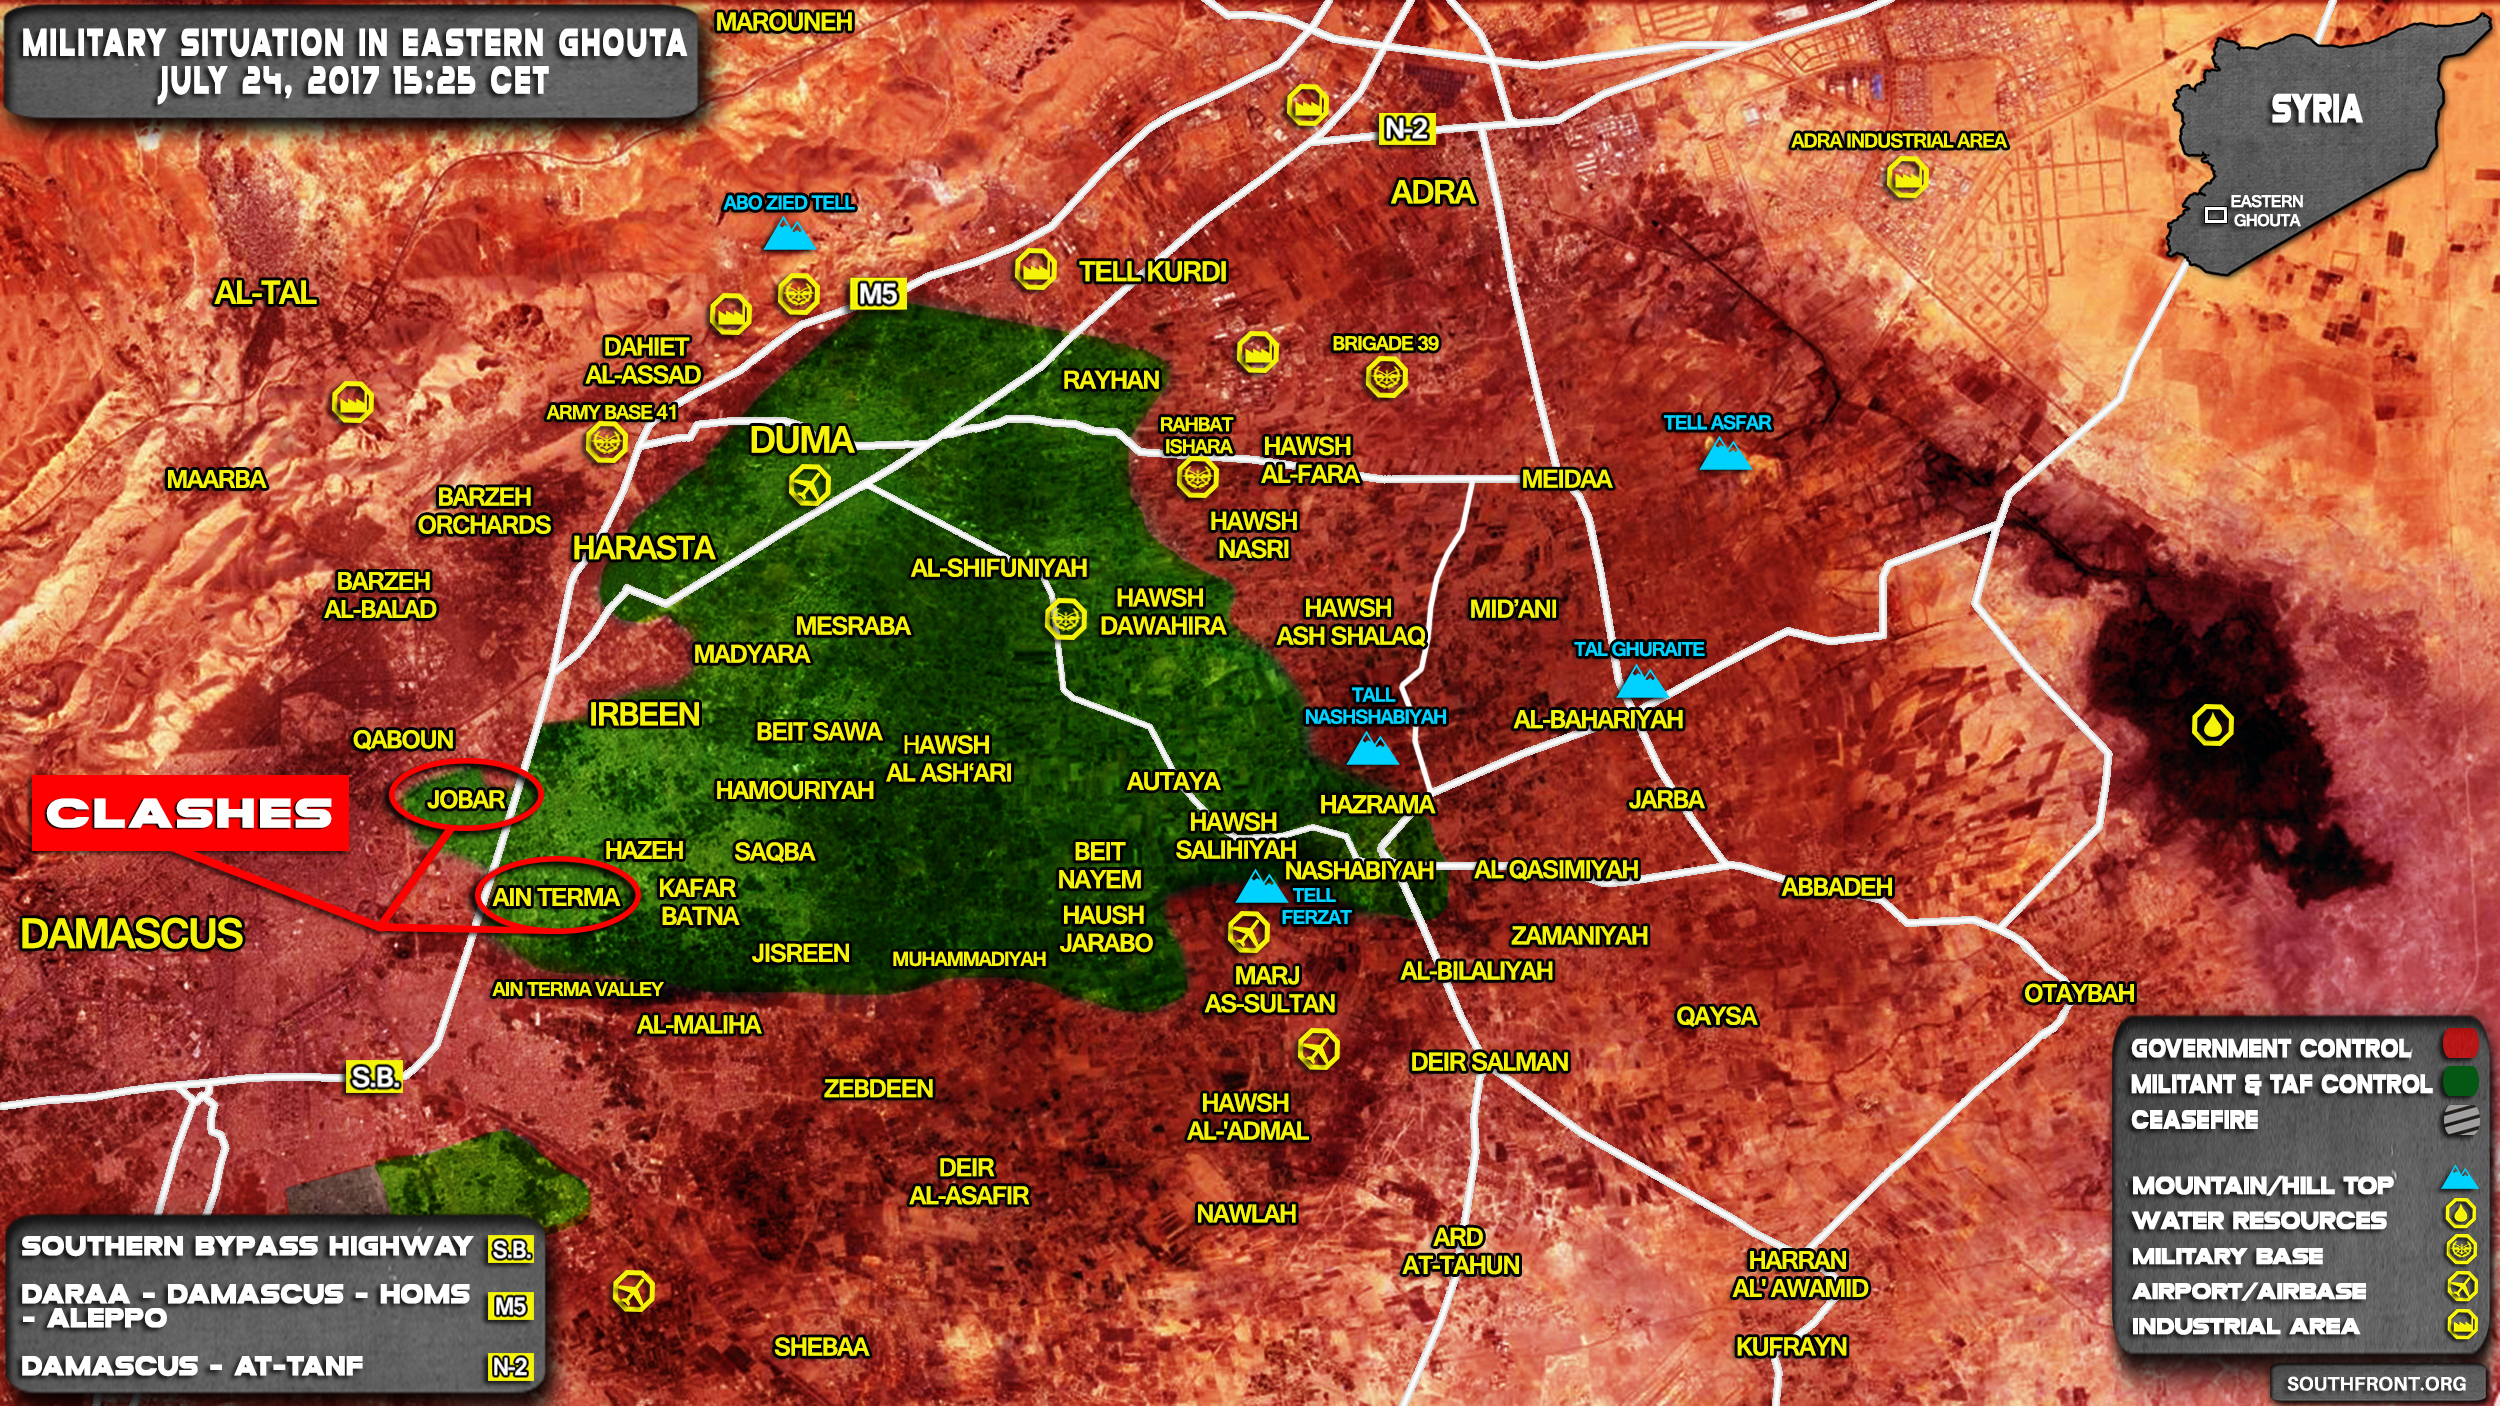 military situation in eastern ghouta region near damascus on july 24 2017 map update